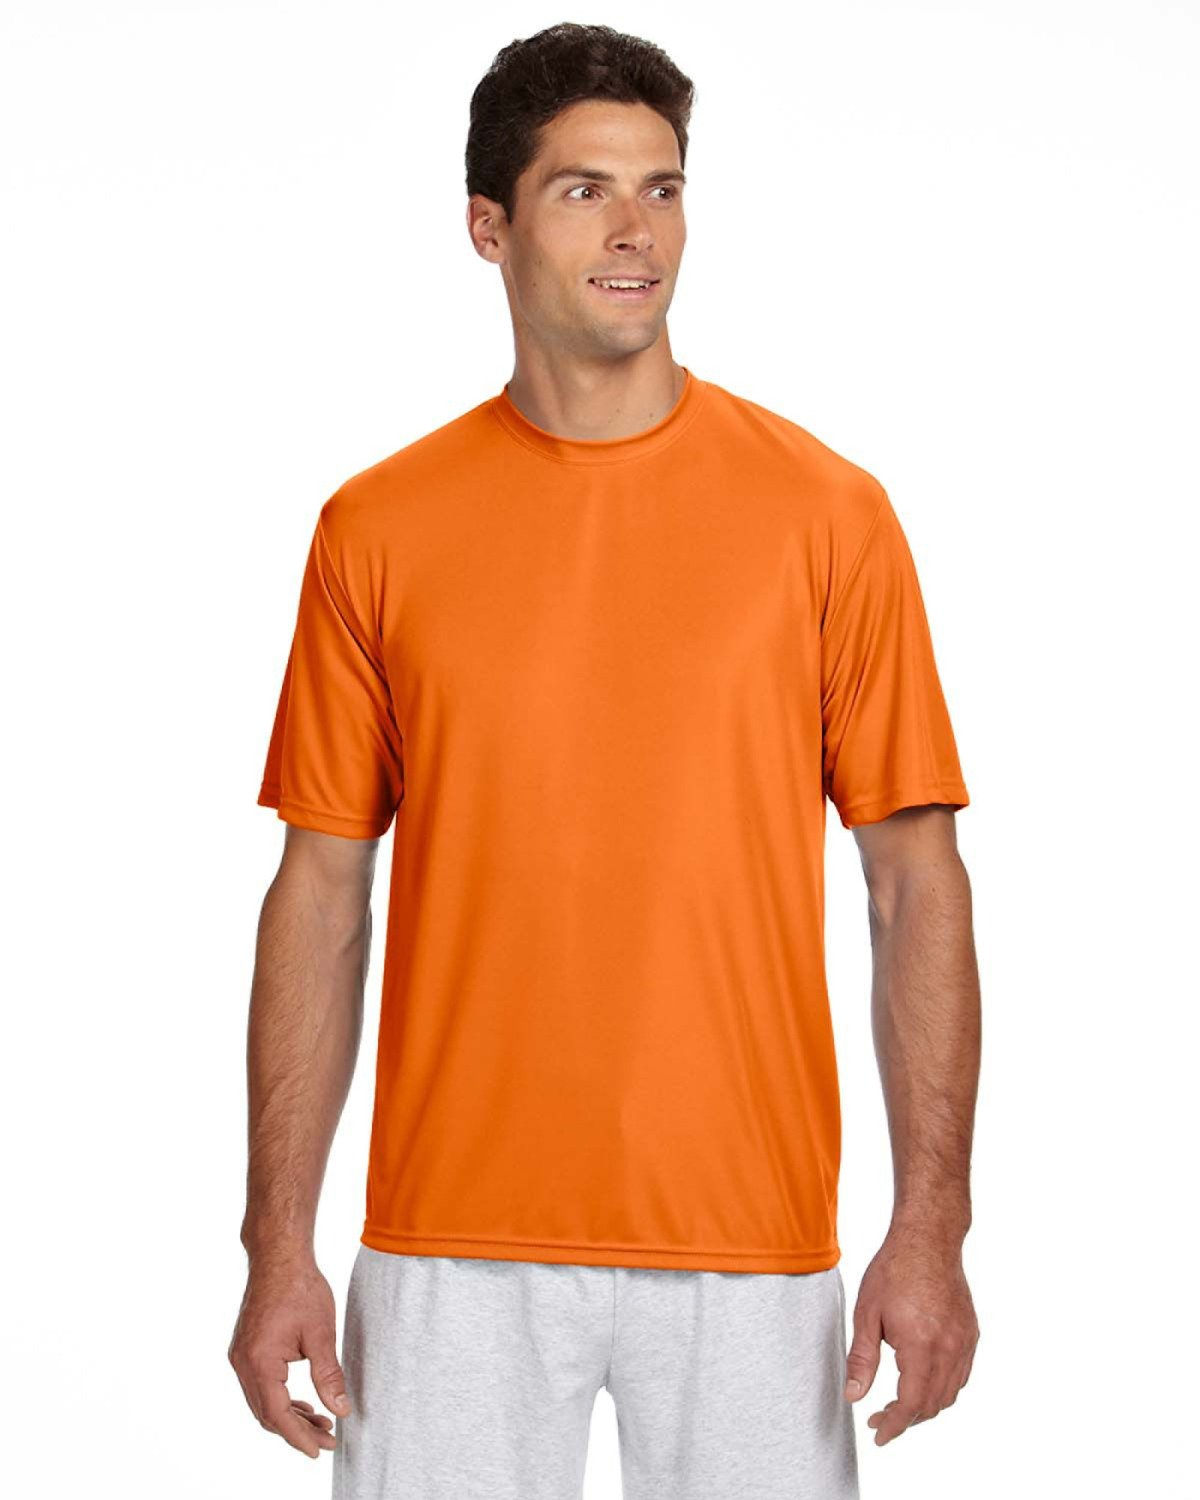 A4 Men's Cooling Performance T-Shirt SAFETY ORANGE